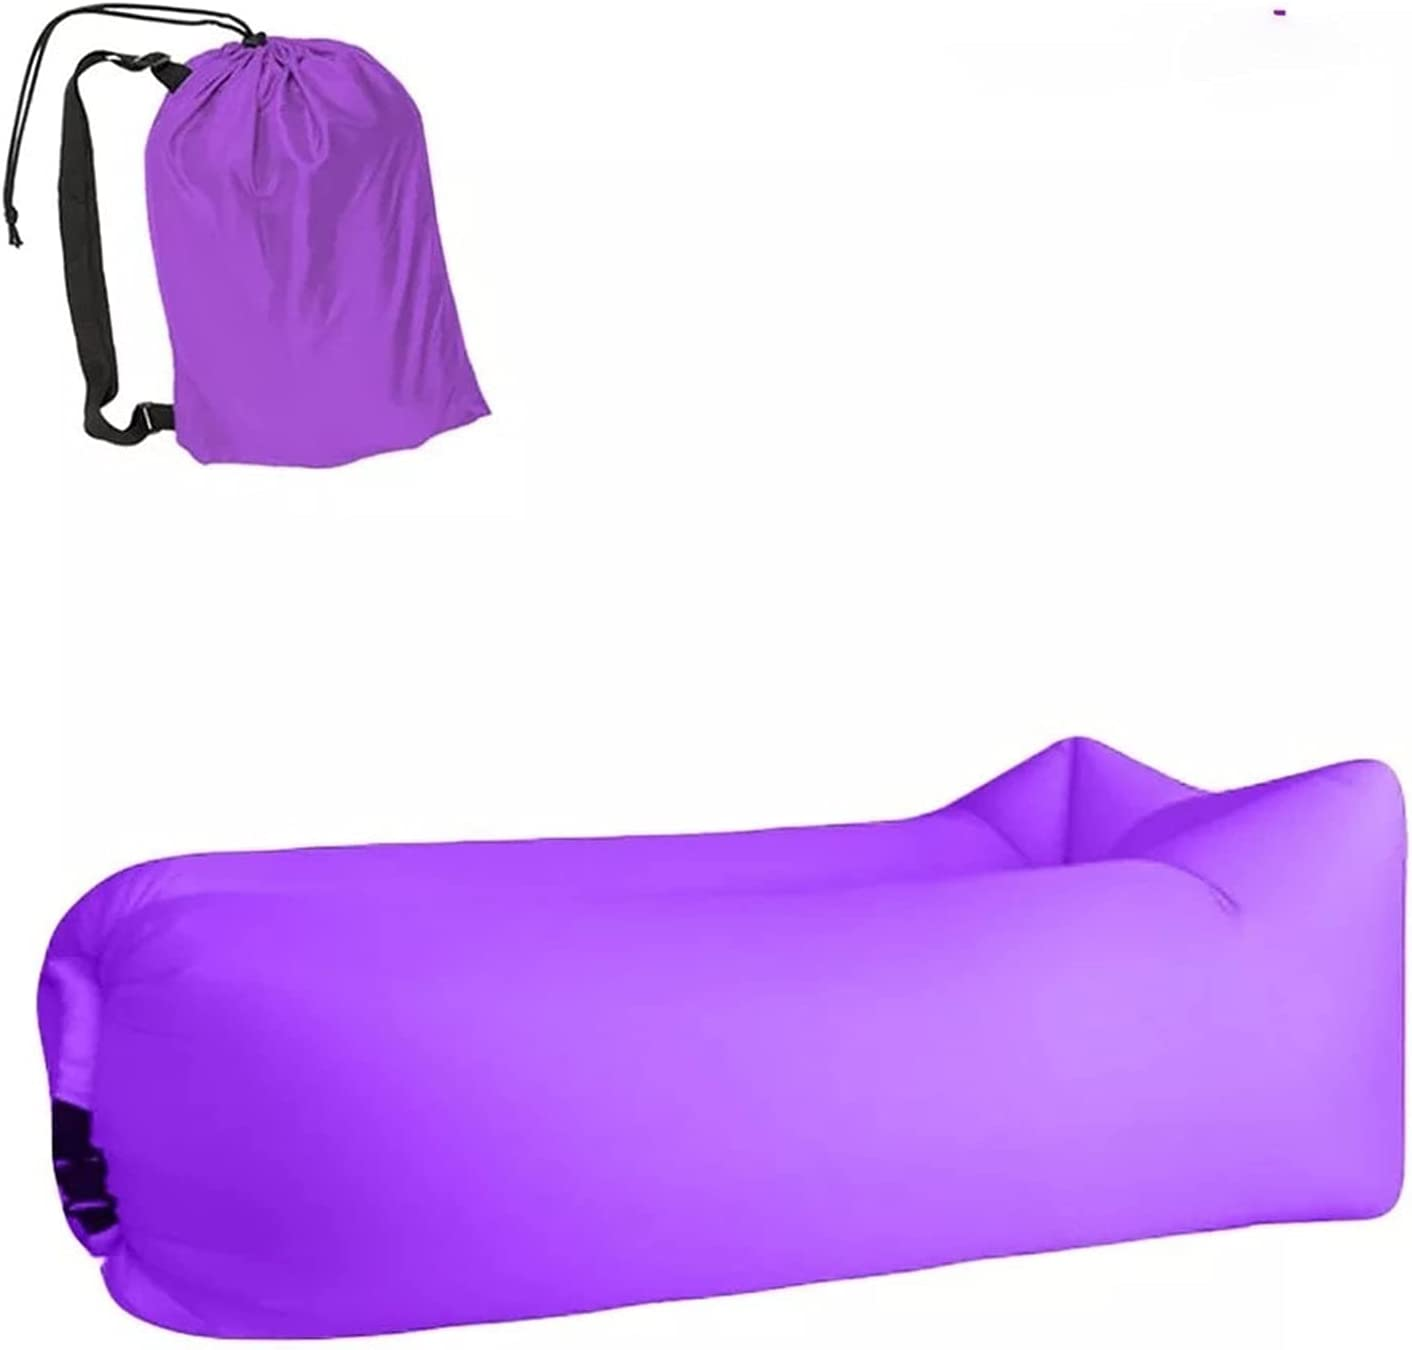 WWPP Camping Topics on TV Sleeping pad Lightweight Save money Outdoor Suitable f Most